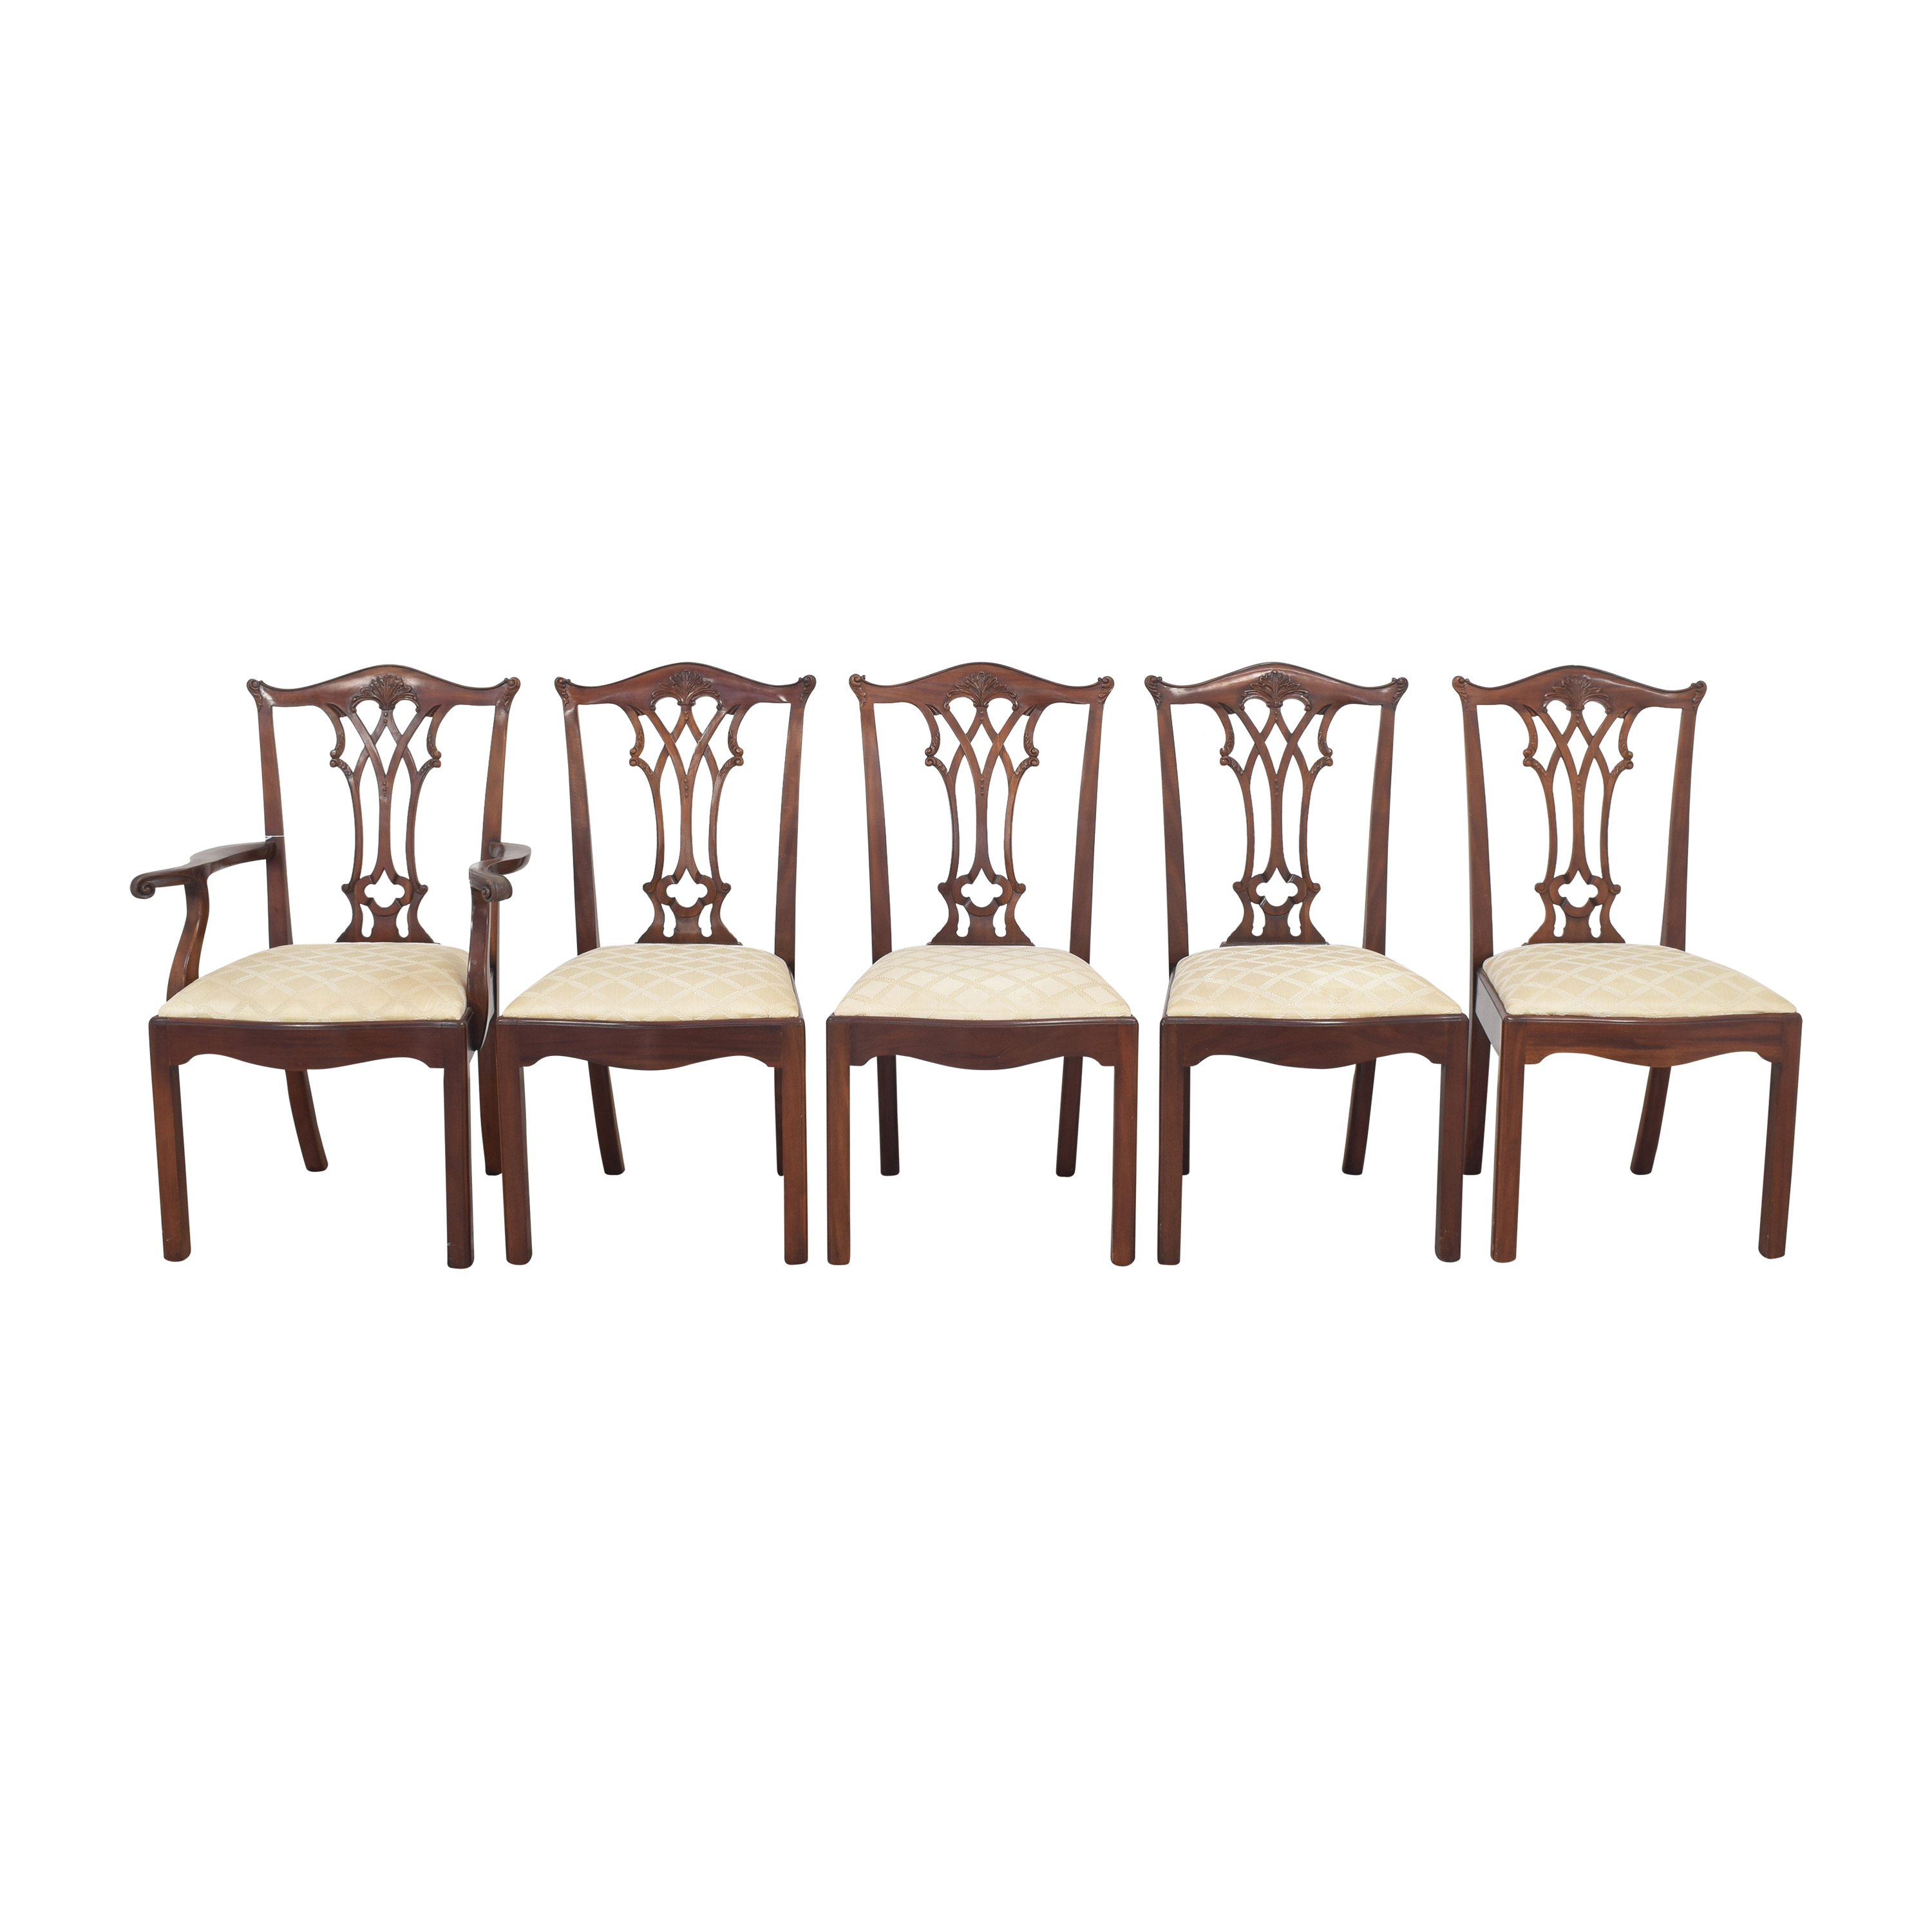 Maitland-Smith Connecticut Dining Chairs / Dining Chairs